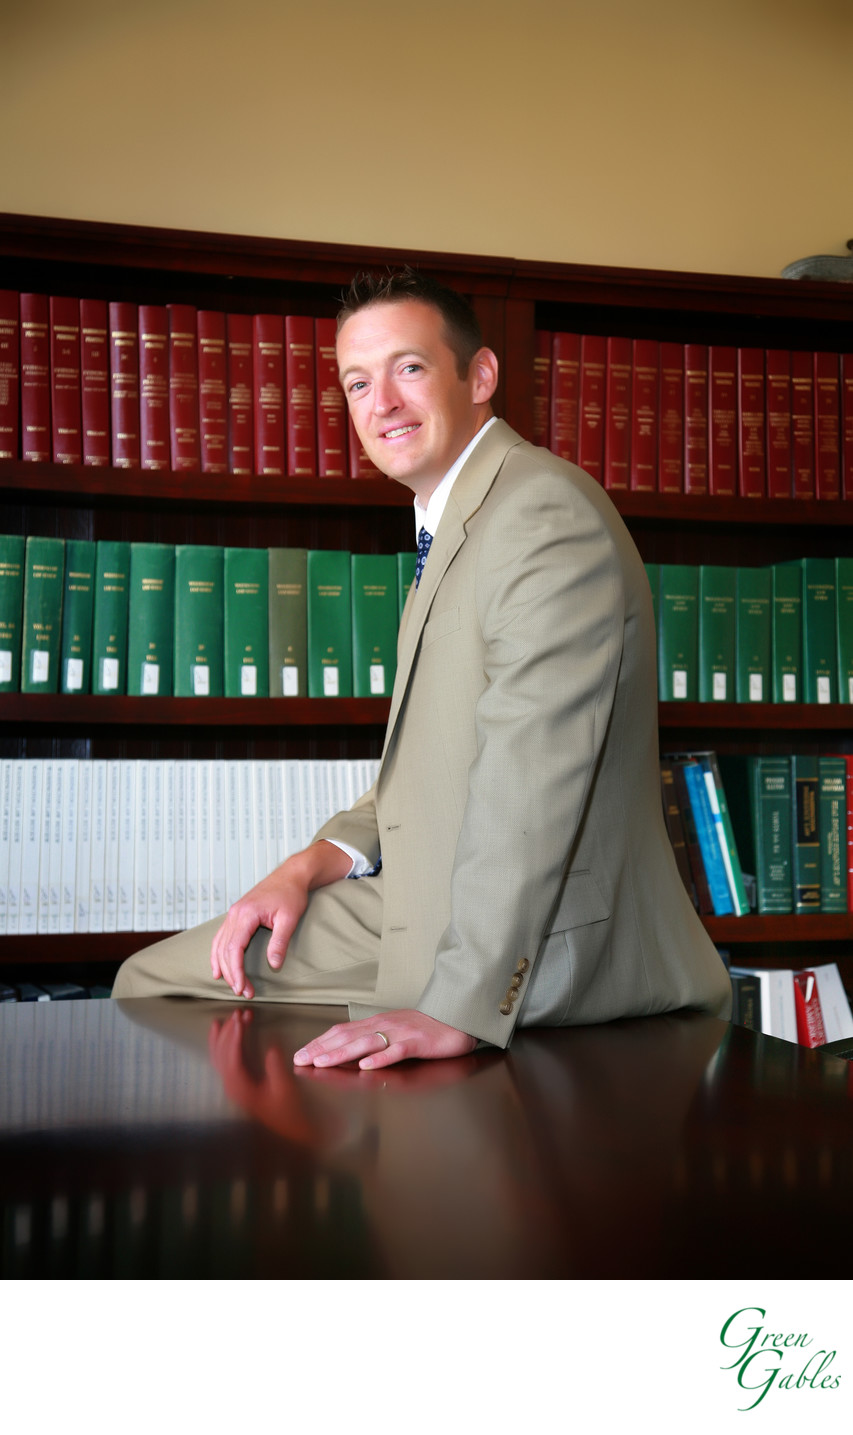 Male attorney in office